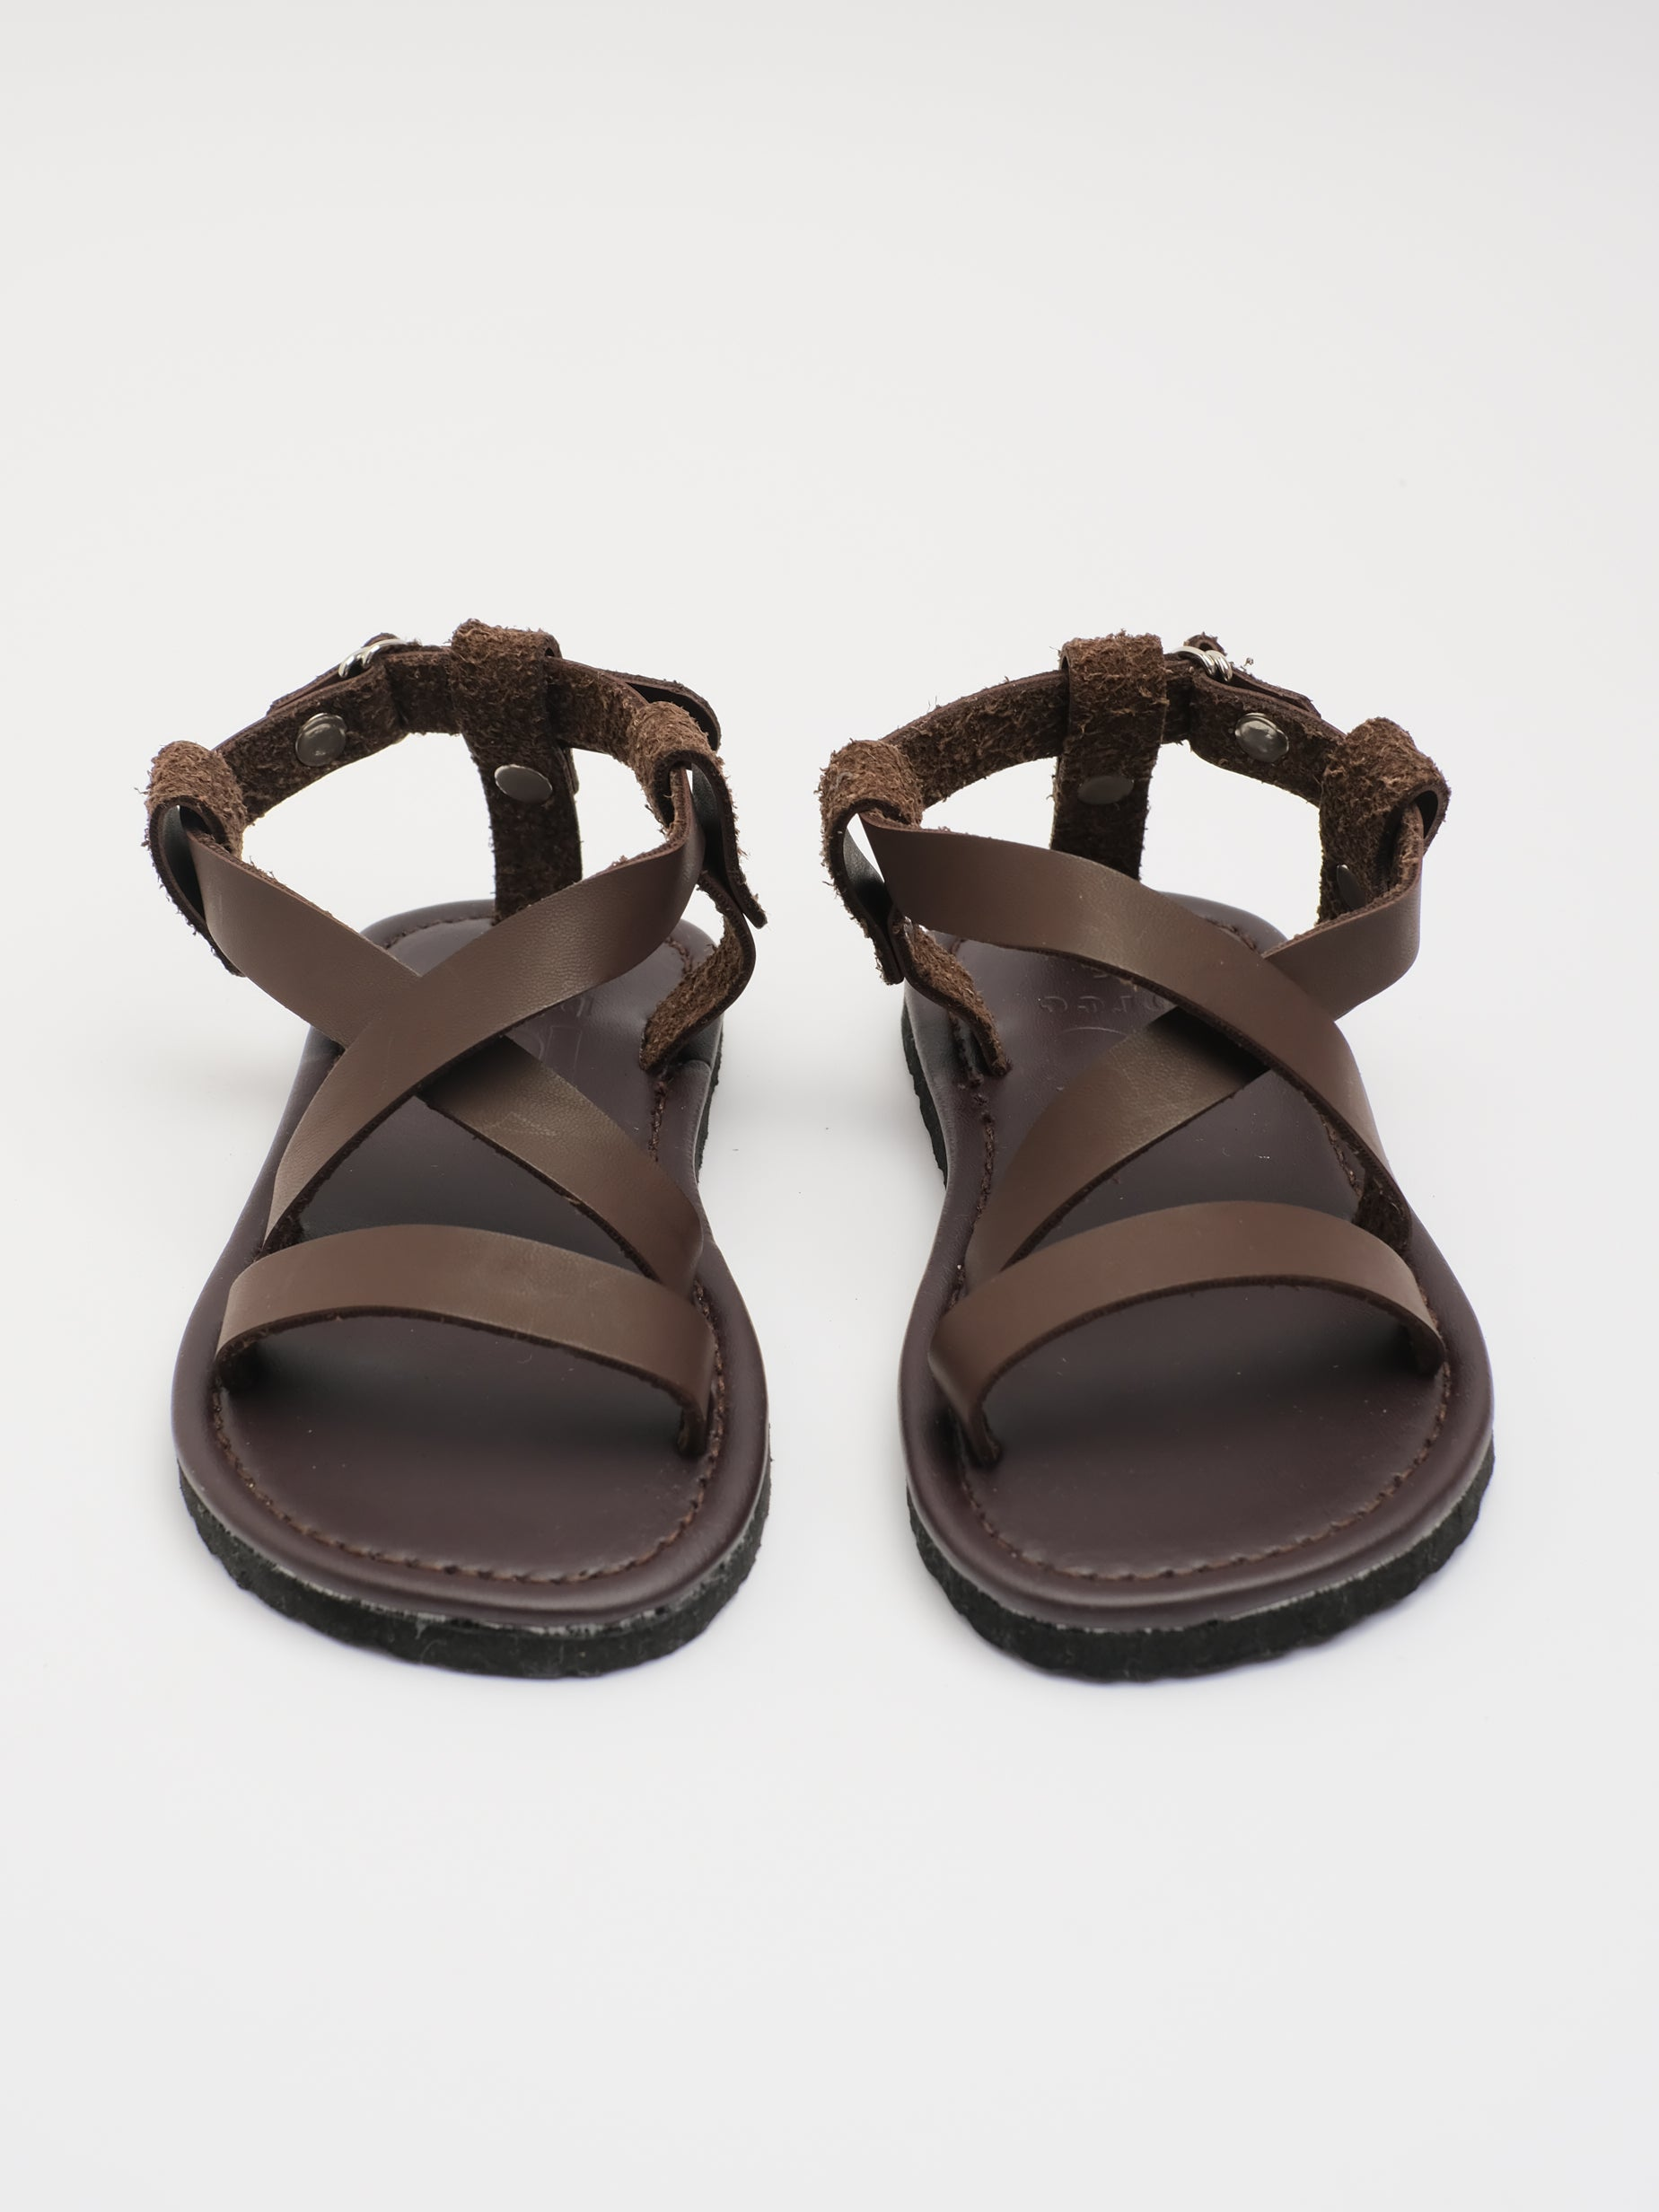 KIDS: SKY STRAP SANDAL (BROWN)